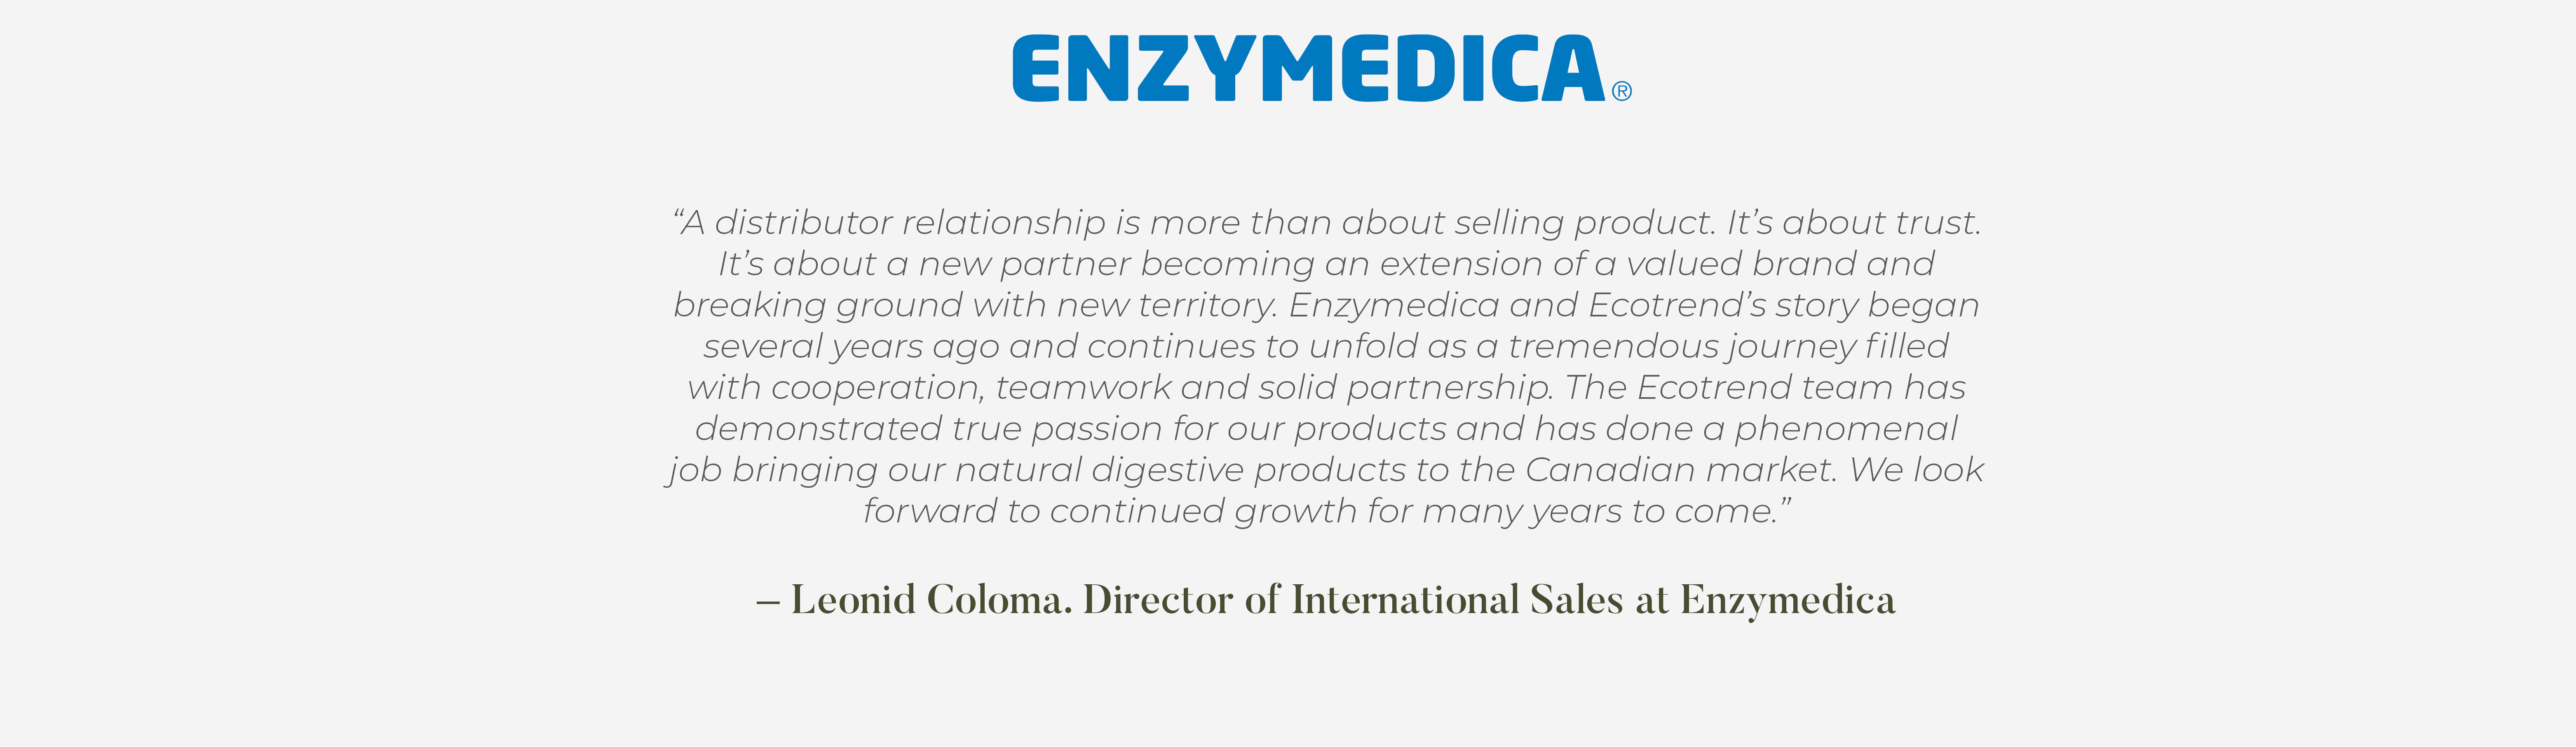 Leonid Coloma Director of international sales at Enzymedica testimonial